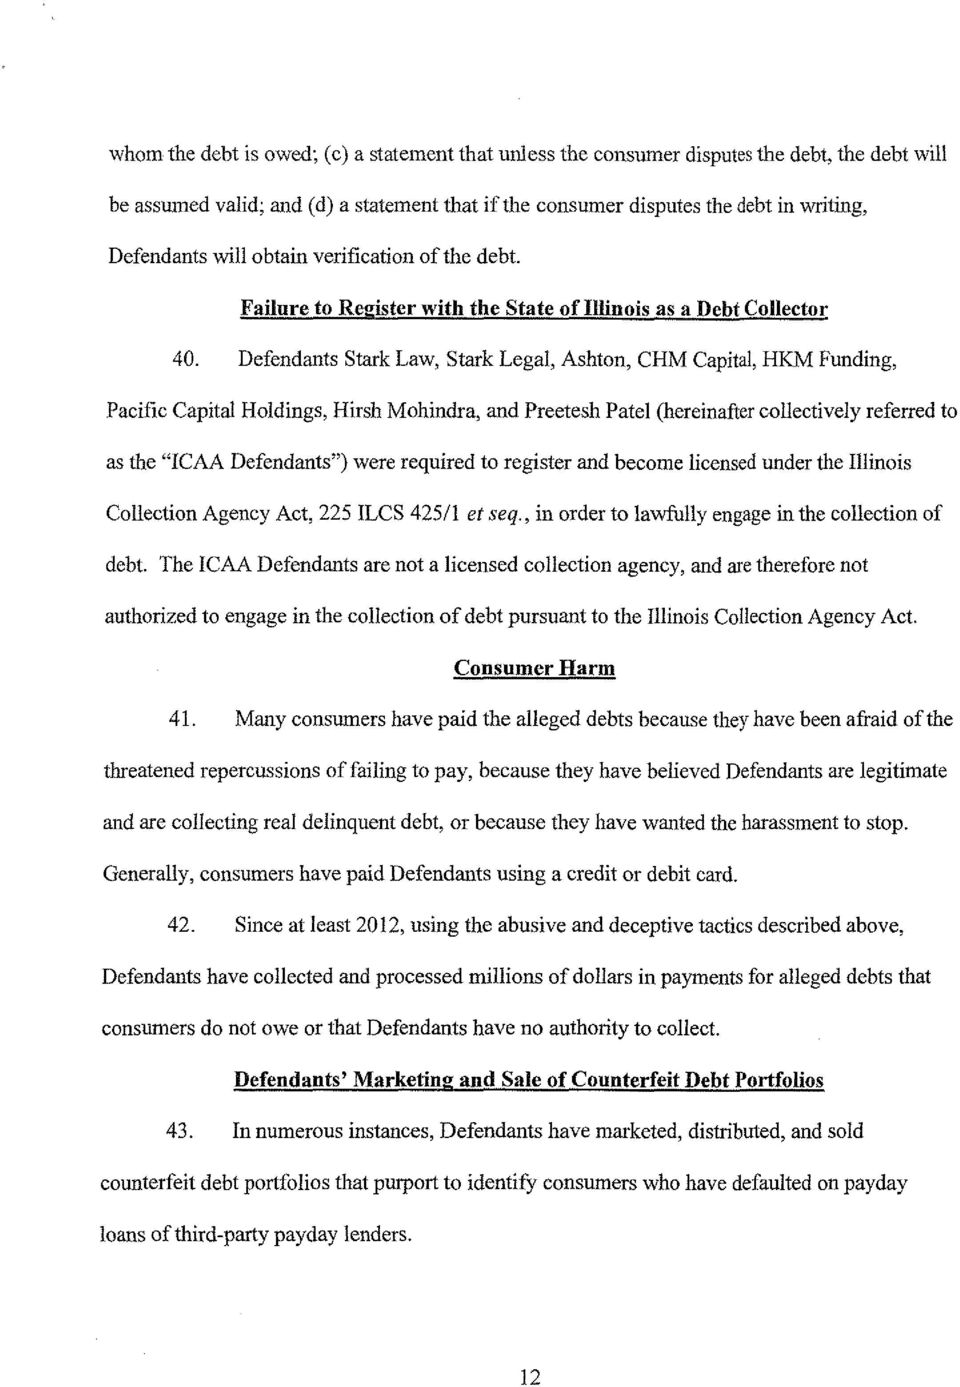 "Defendants Stark Law, Stark Legal, Ashton, CHM Capital, HKM Funding, Pacific Capital Holdings, Hirsh Mohindra, and Preetesh Patel (hereinafter collectively referred to as the ""ICAA Defendants"" were"